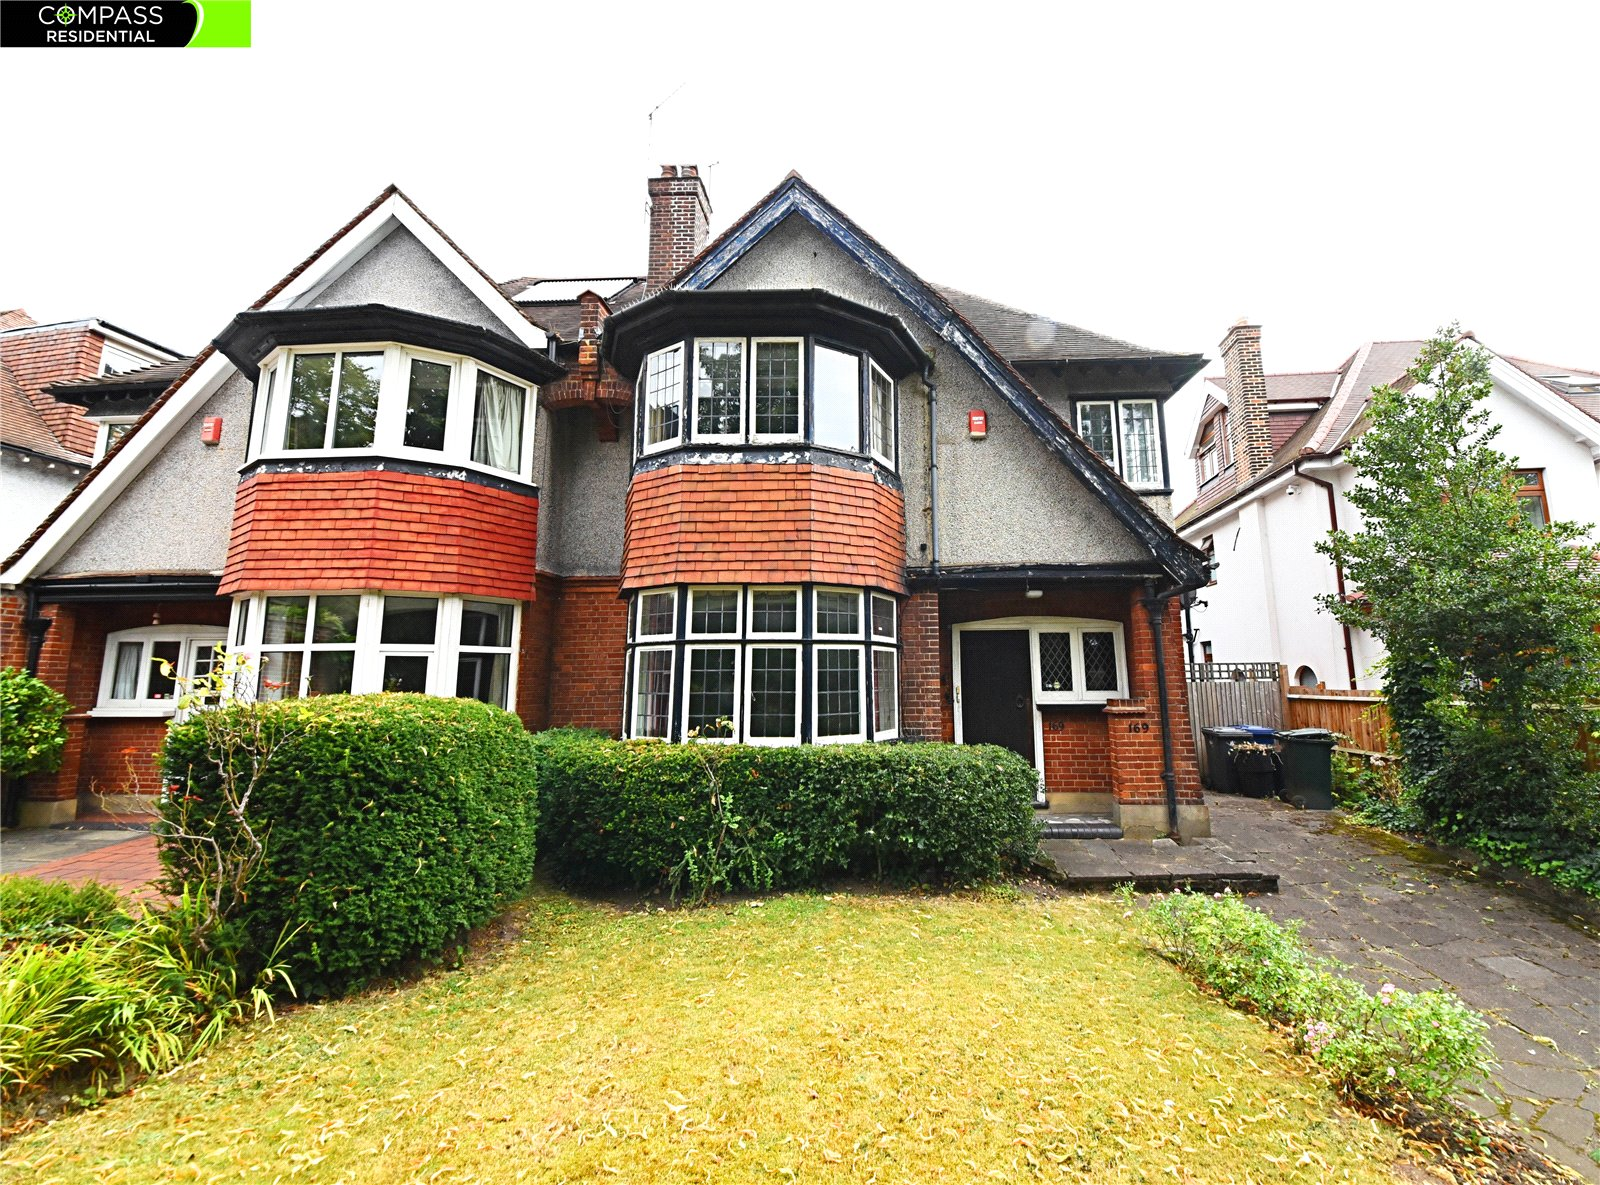 6 bed house for sale in Whetstone, N20 0NN, N20